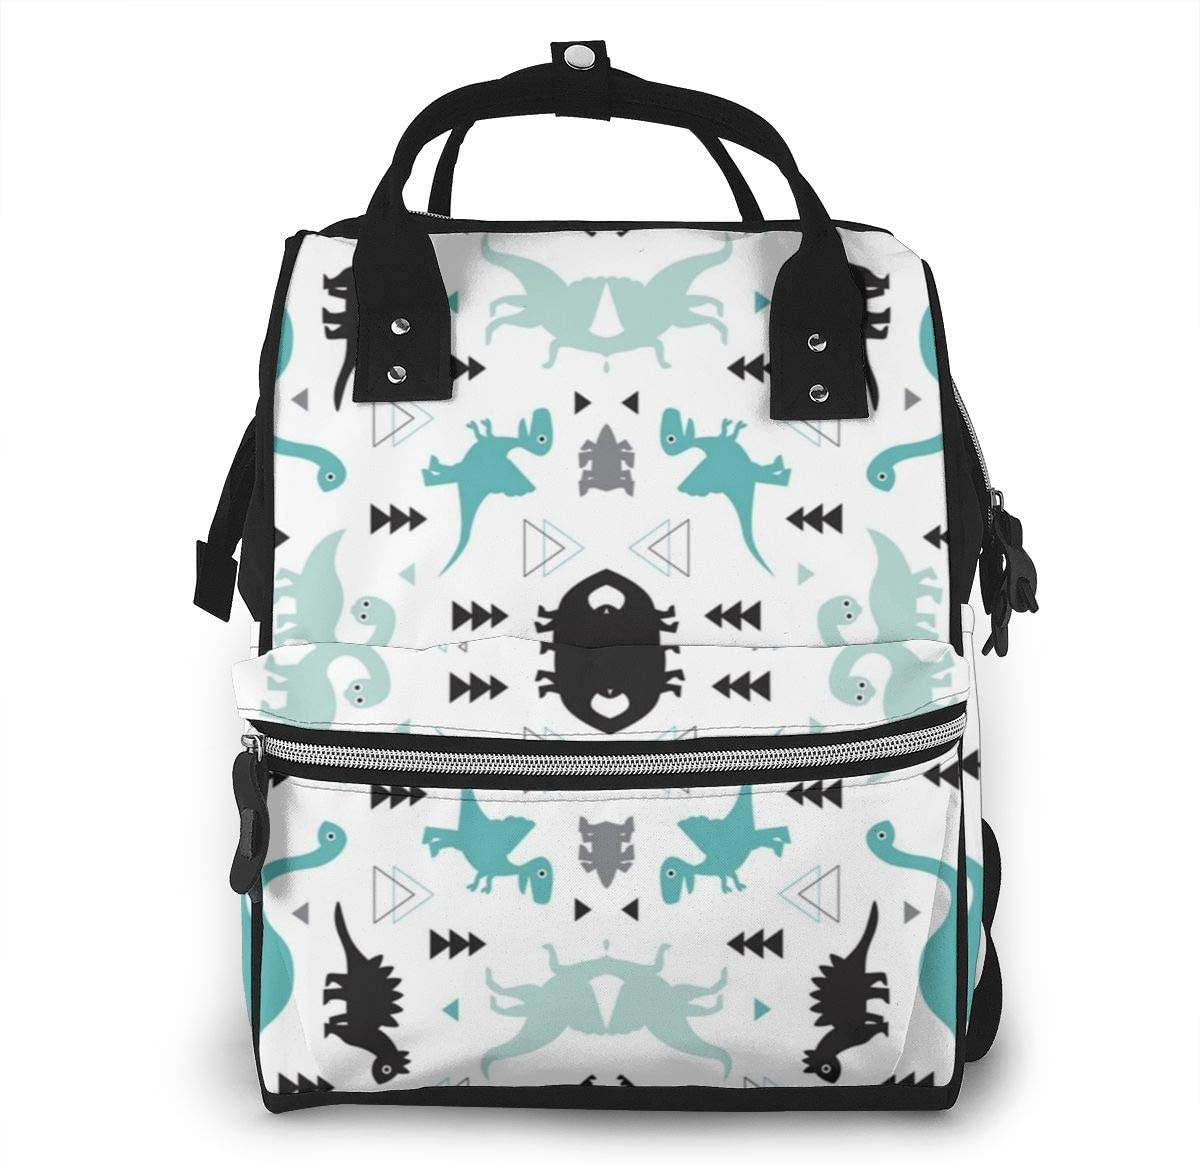 NiYoung Diaper Bag Backpack-Waterproof Large Capacity &Multiple Pockets for Organization. Ideal for Travel Nappy Bags (Funny Dinosaur Set White)